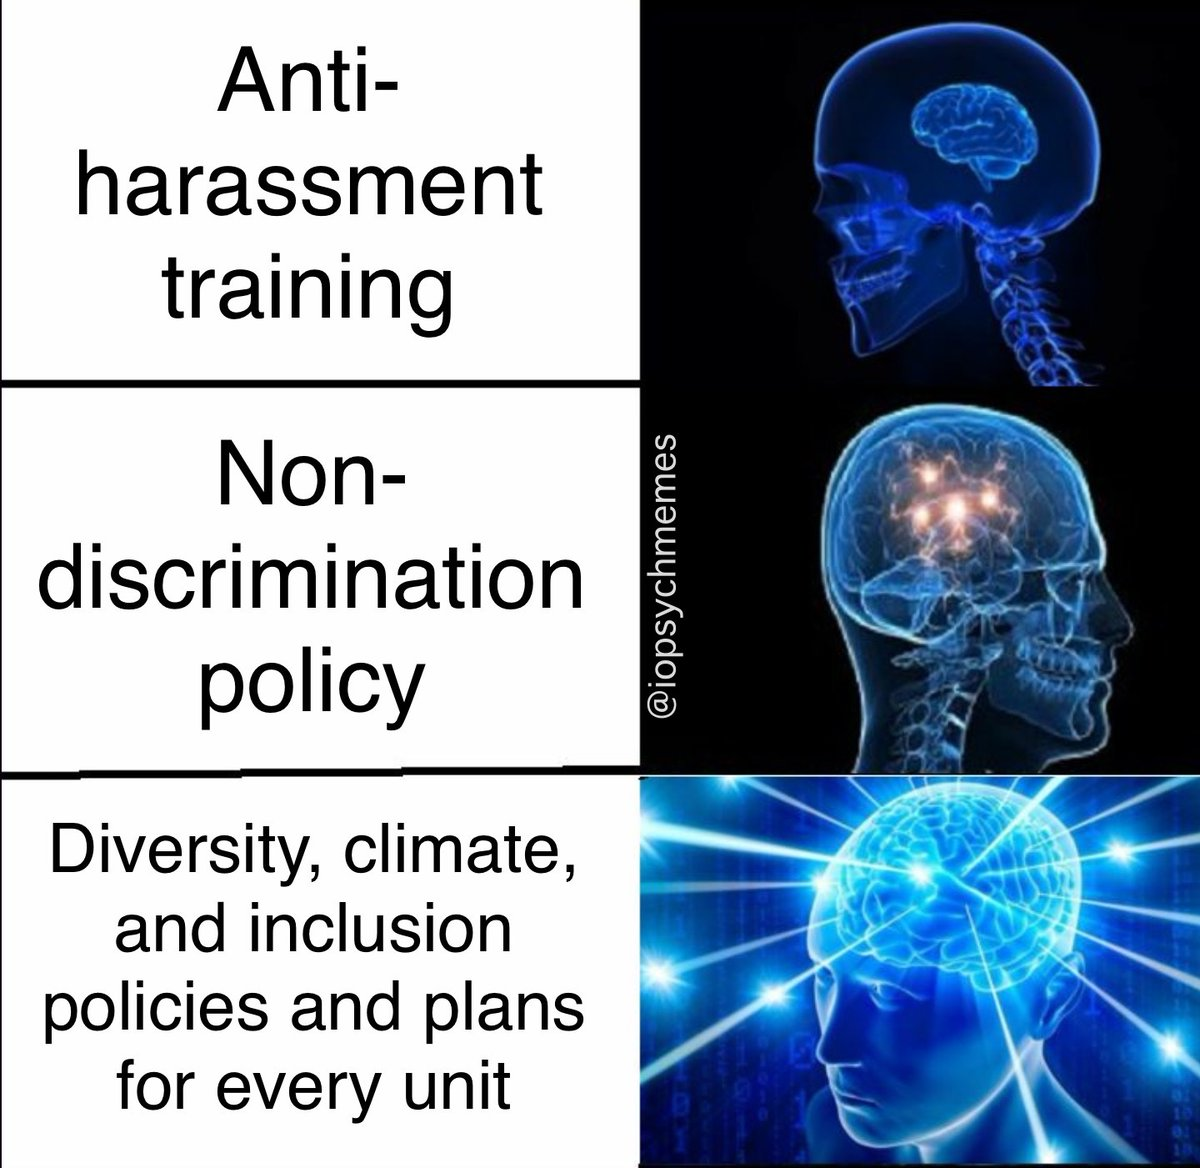 Sure, it would be cool if we could eliminate workplace discrimination in one 2 hr training session, but it takes a lot more than that. #diversity #inclusion #OHPsych #iopsych #iopsychmemes #psychology #psychologymemes #psychmemes #APpsych (thanks Mindy Bergman)pic.twitter.com/lwbvJdh3UQ